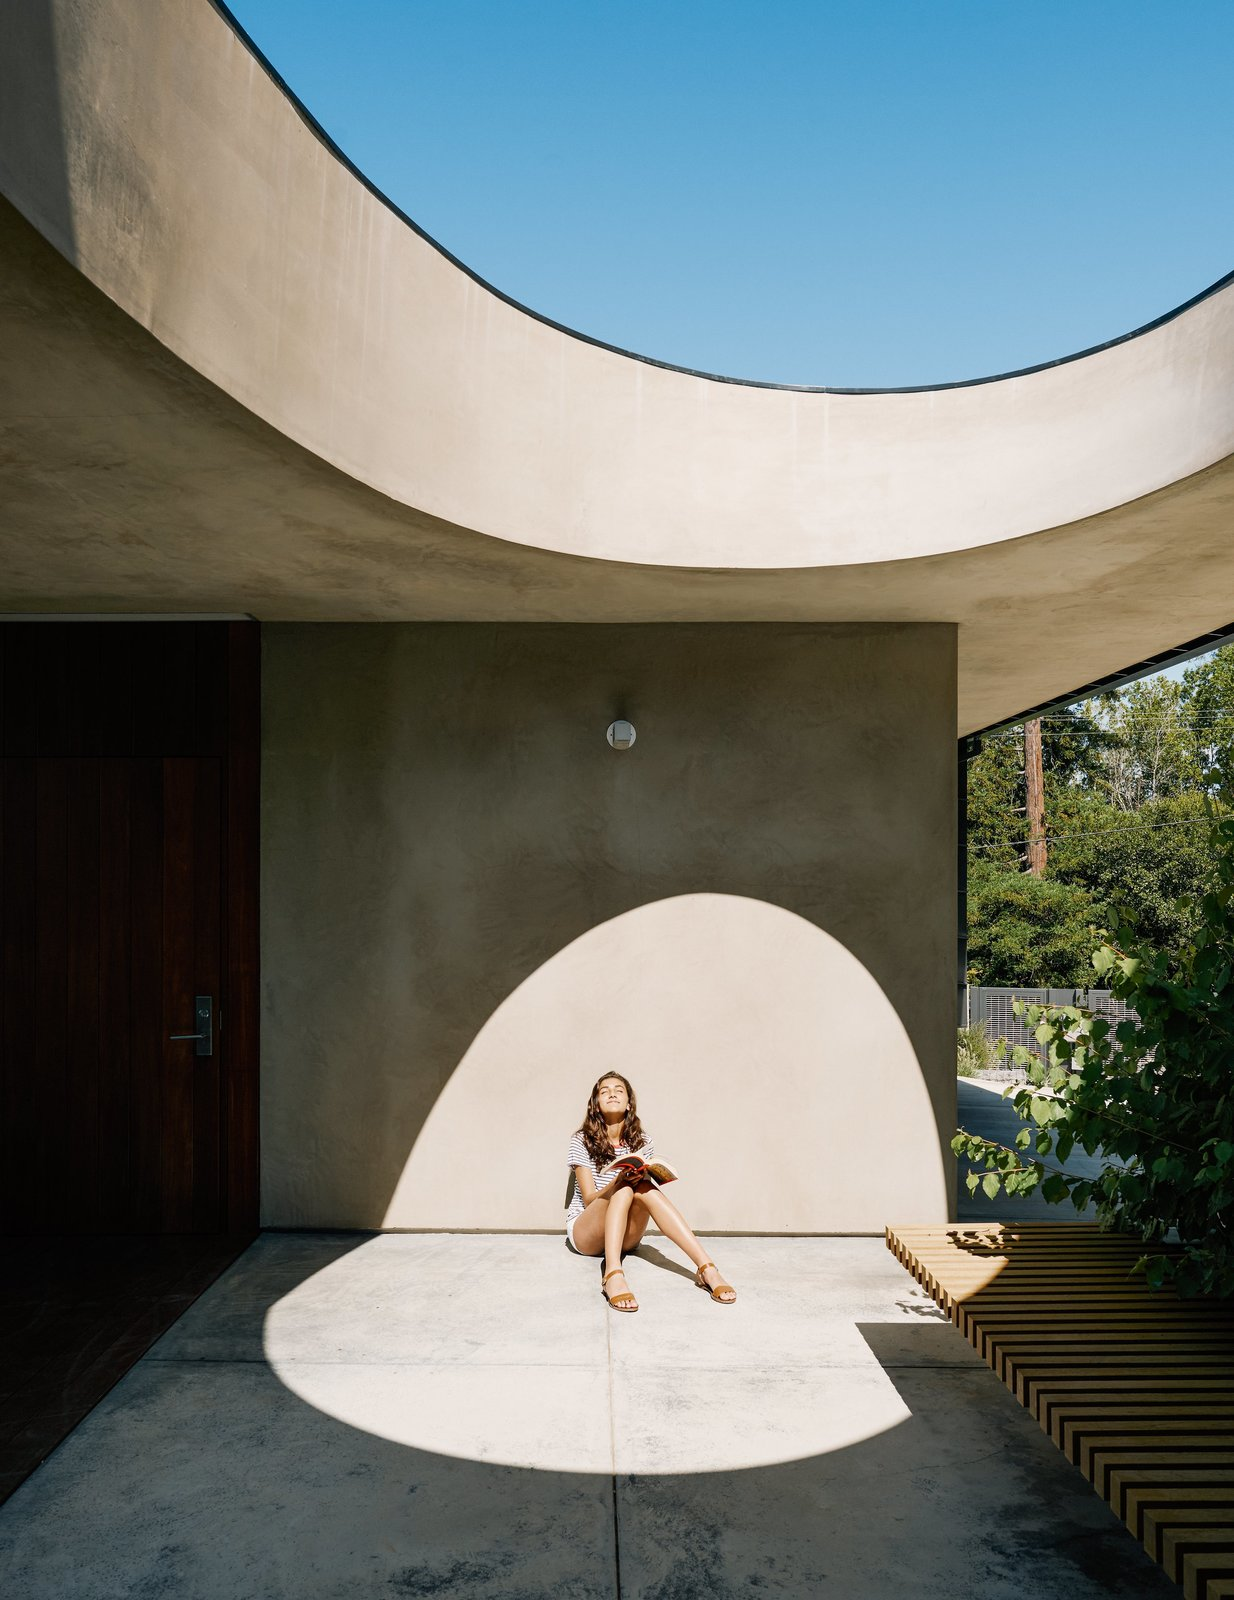 For the breezeway, Schwartz used concrete to achieve the feel of a hardscape courtyard. Uma basks beneath the egg-shaped opening.